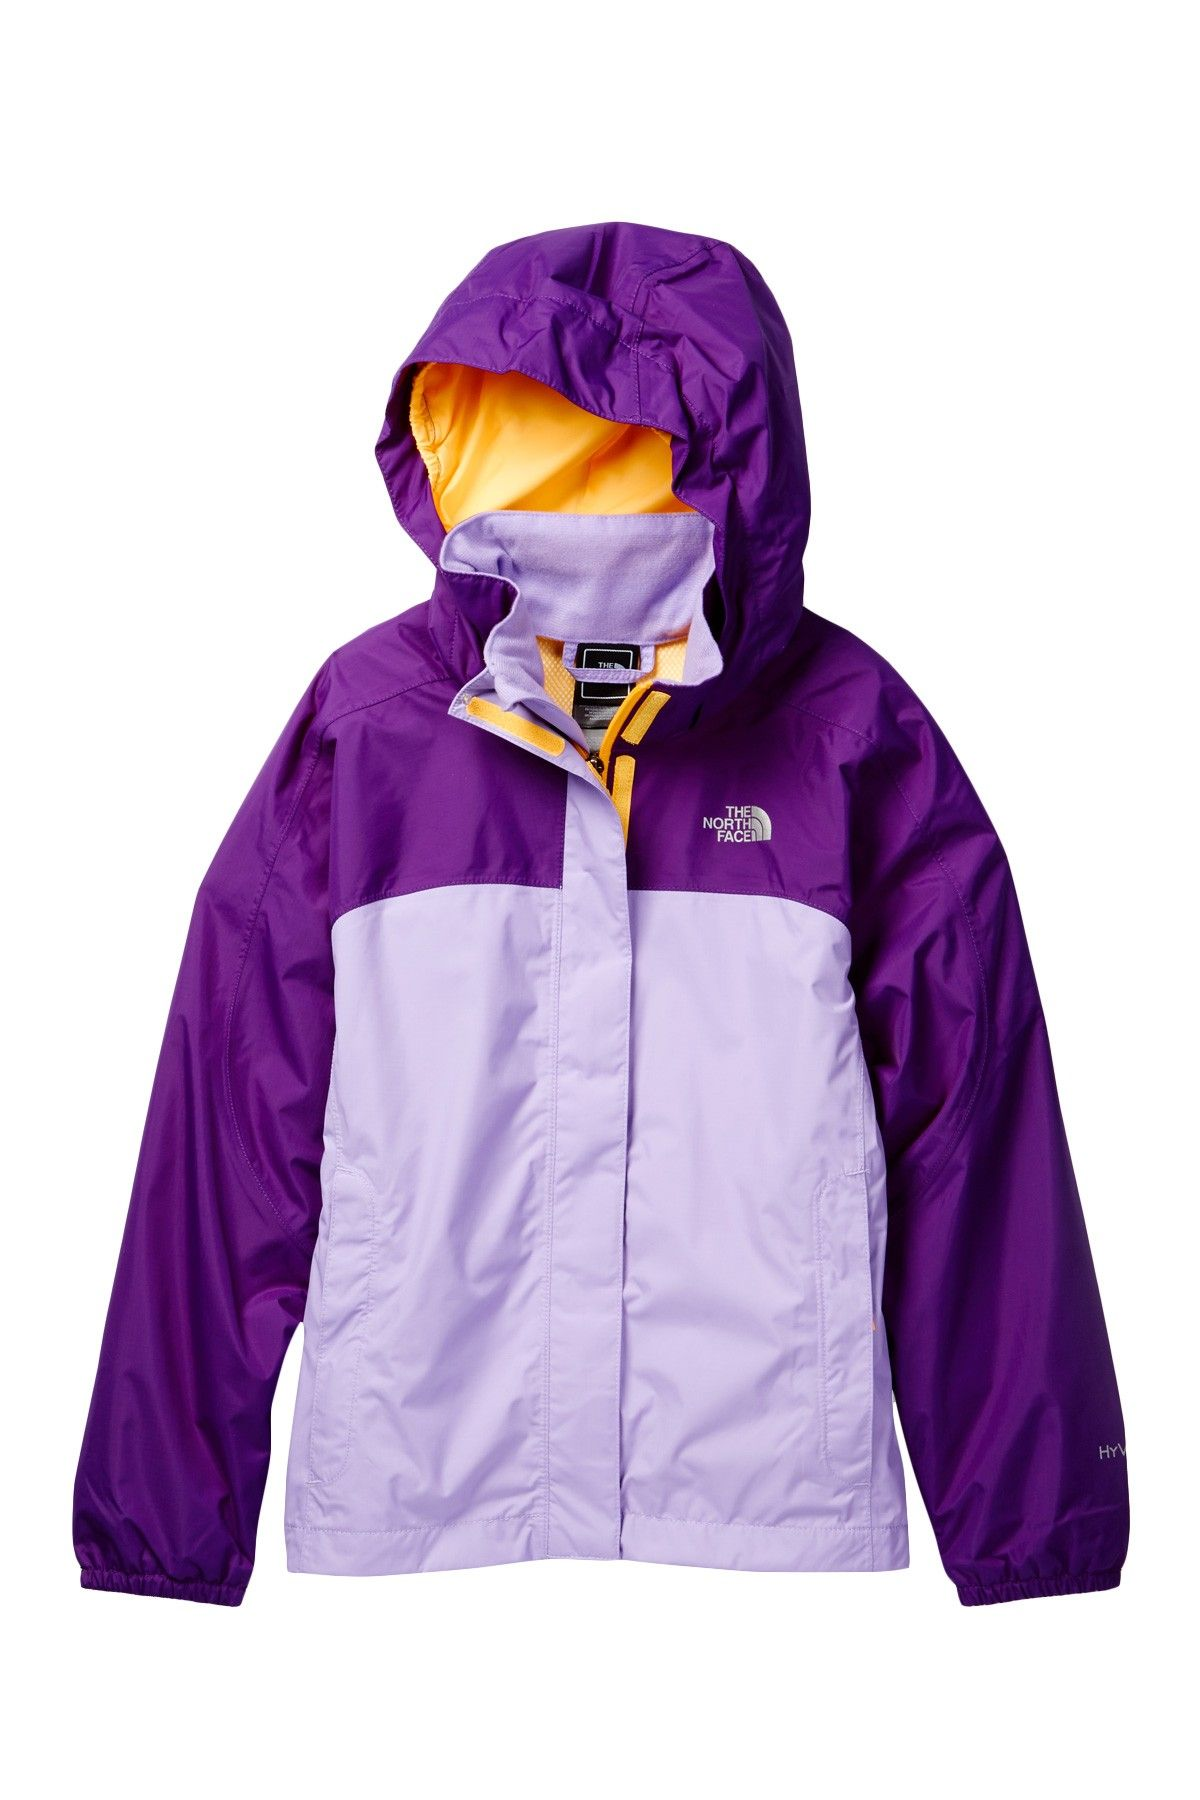 The North Face Kids On Hautelook North Face Kids Girls Jacket Kids Outfits [ 1800 x 1200 Pixel ]